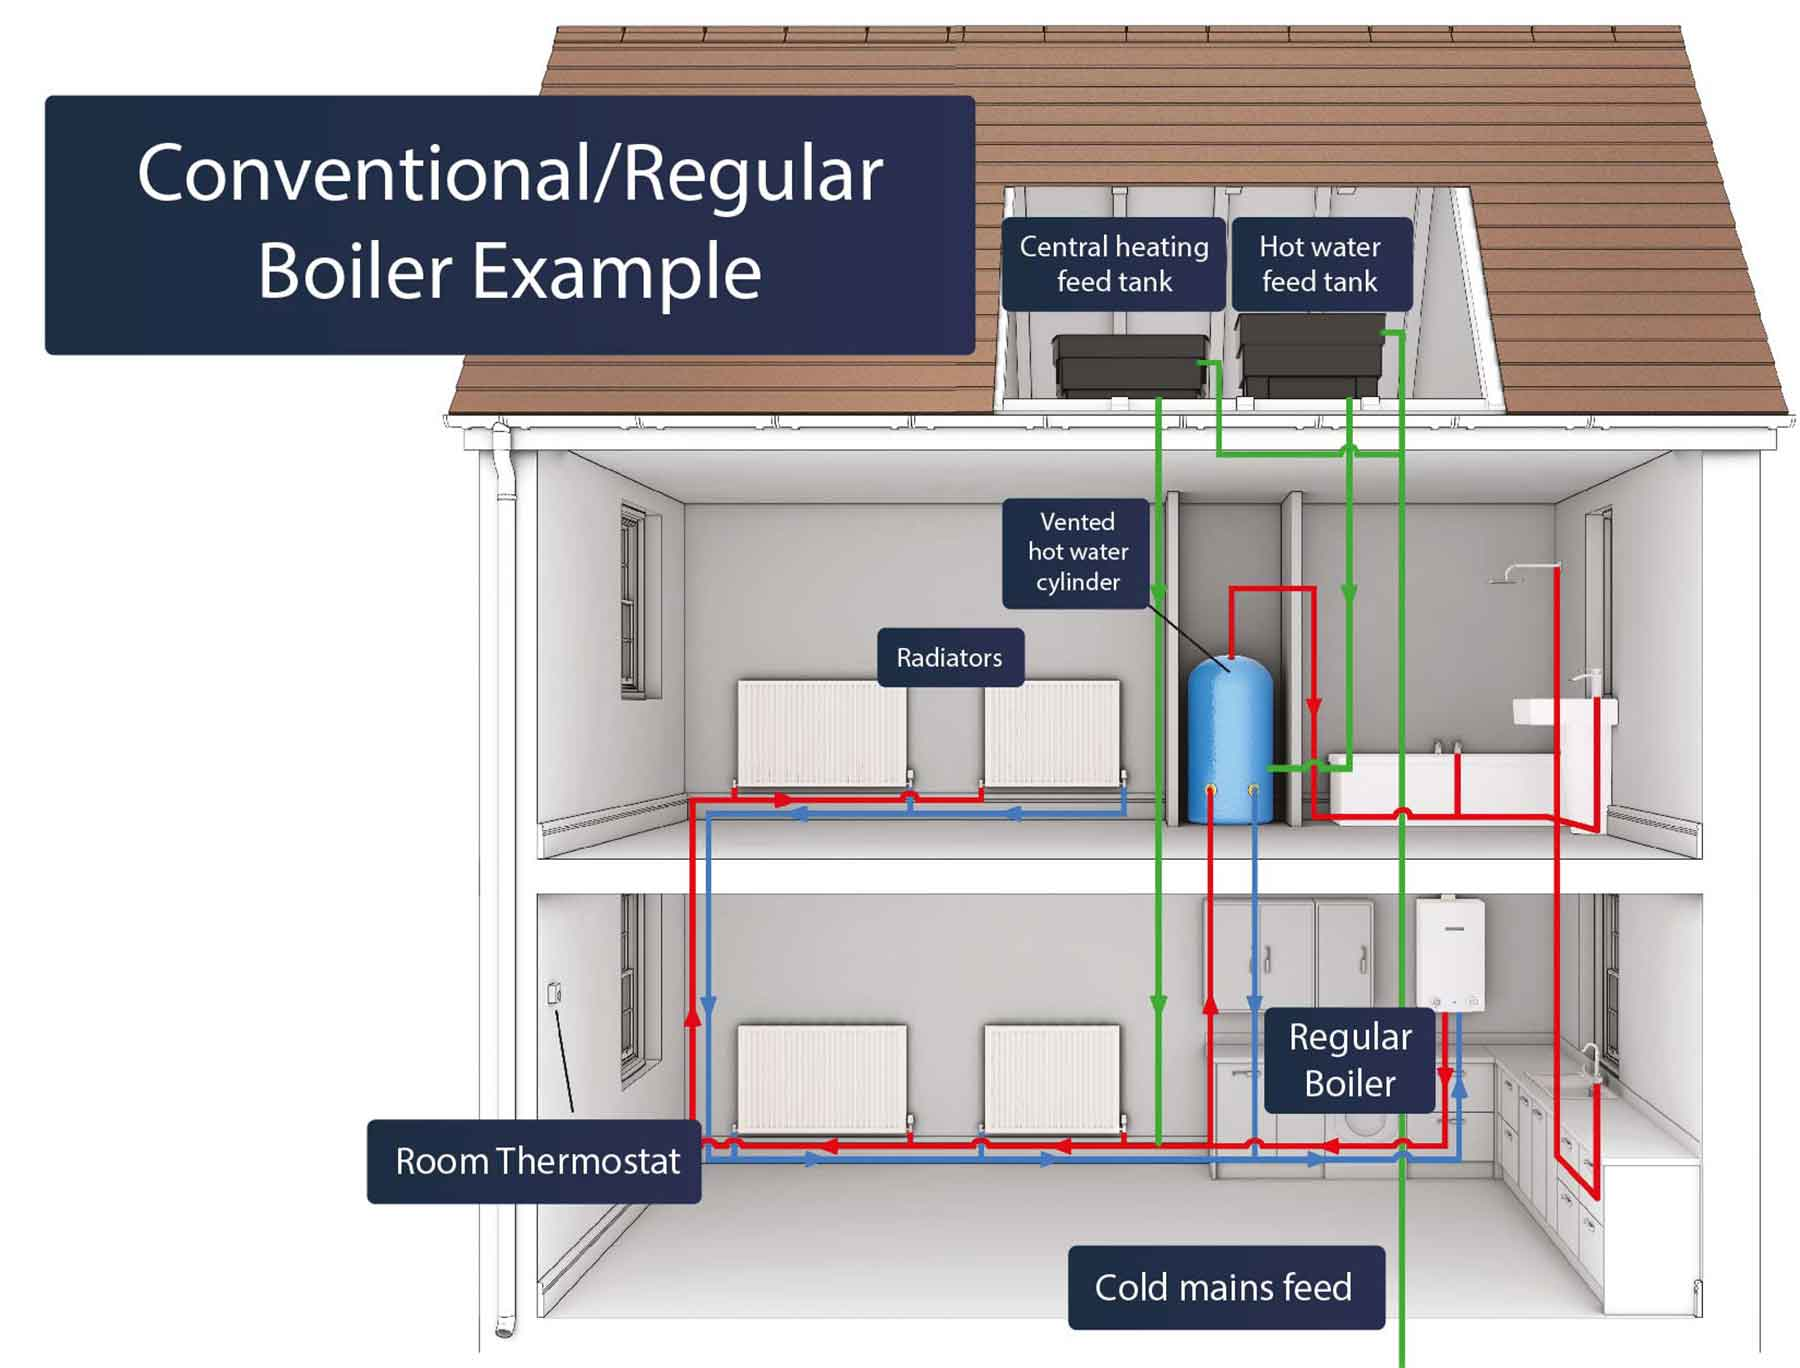 Different Types of Boiler - Combi or Conventional